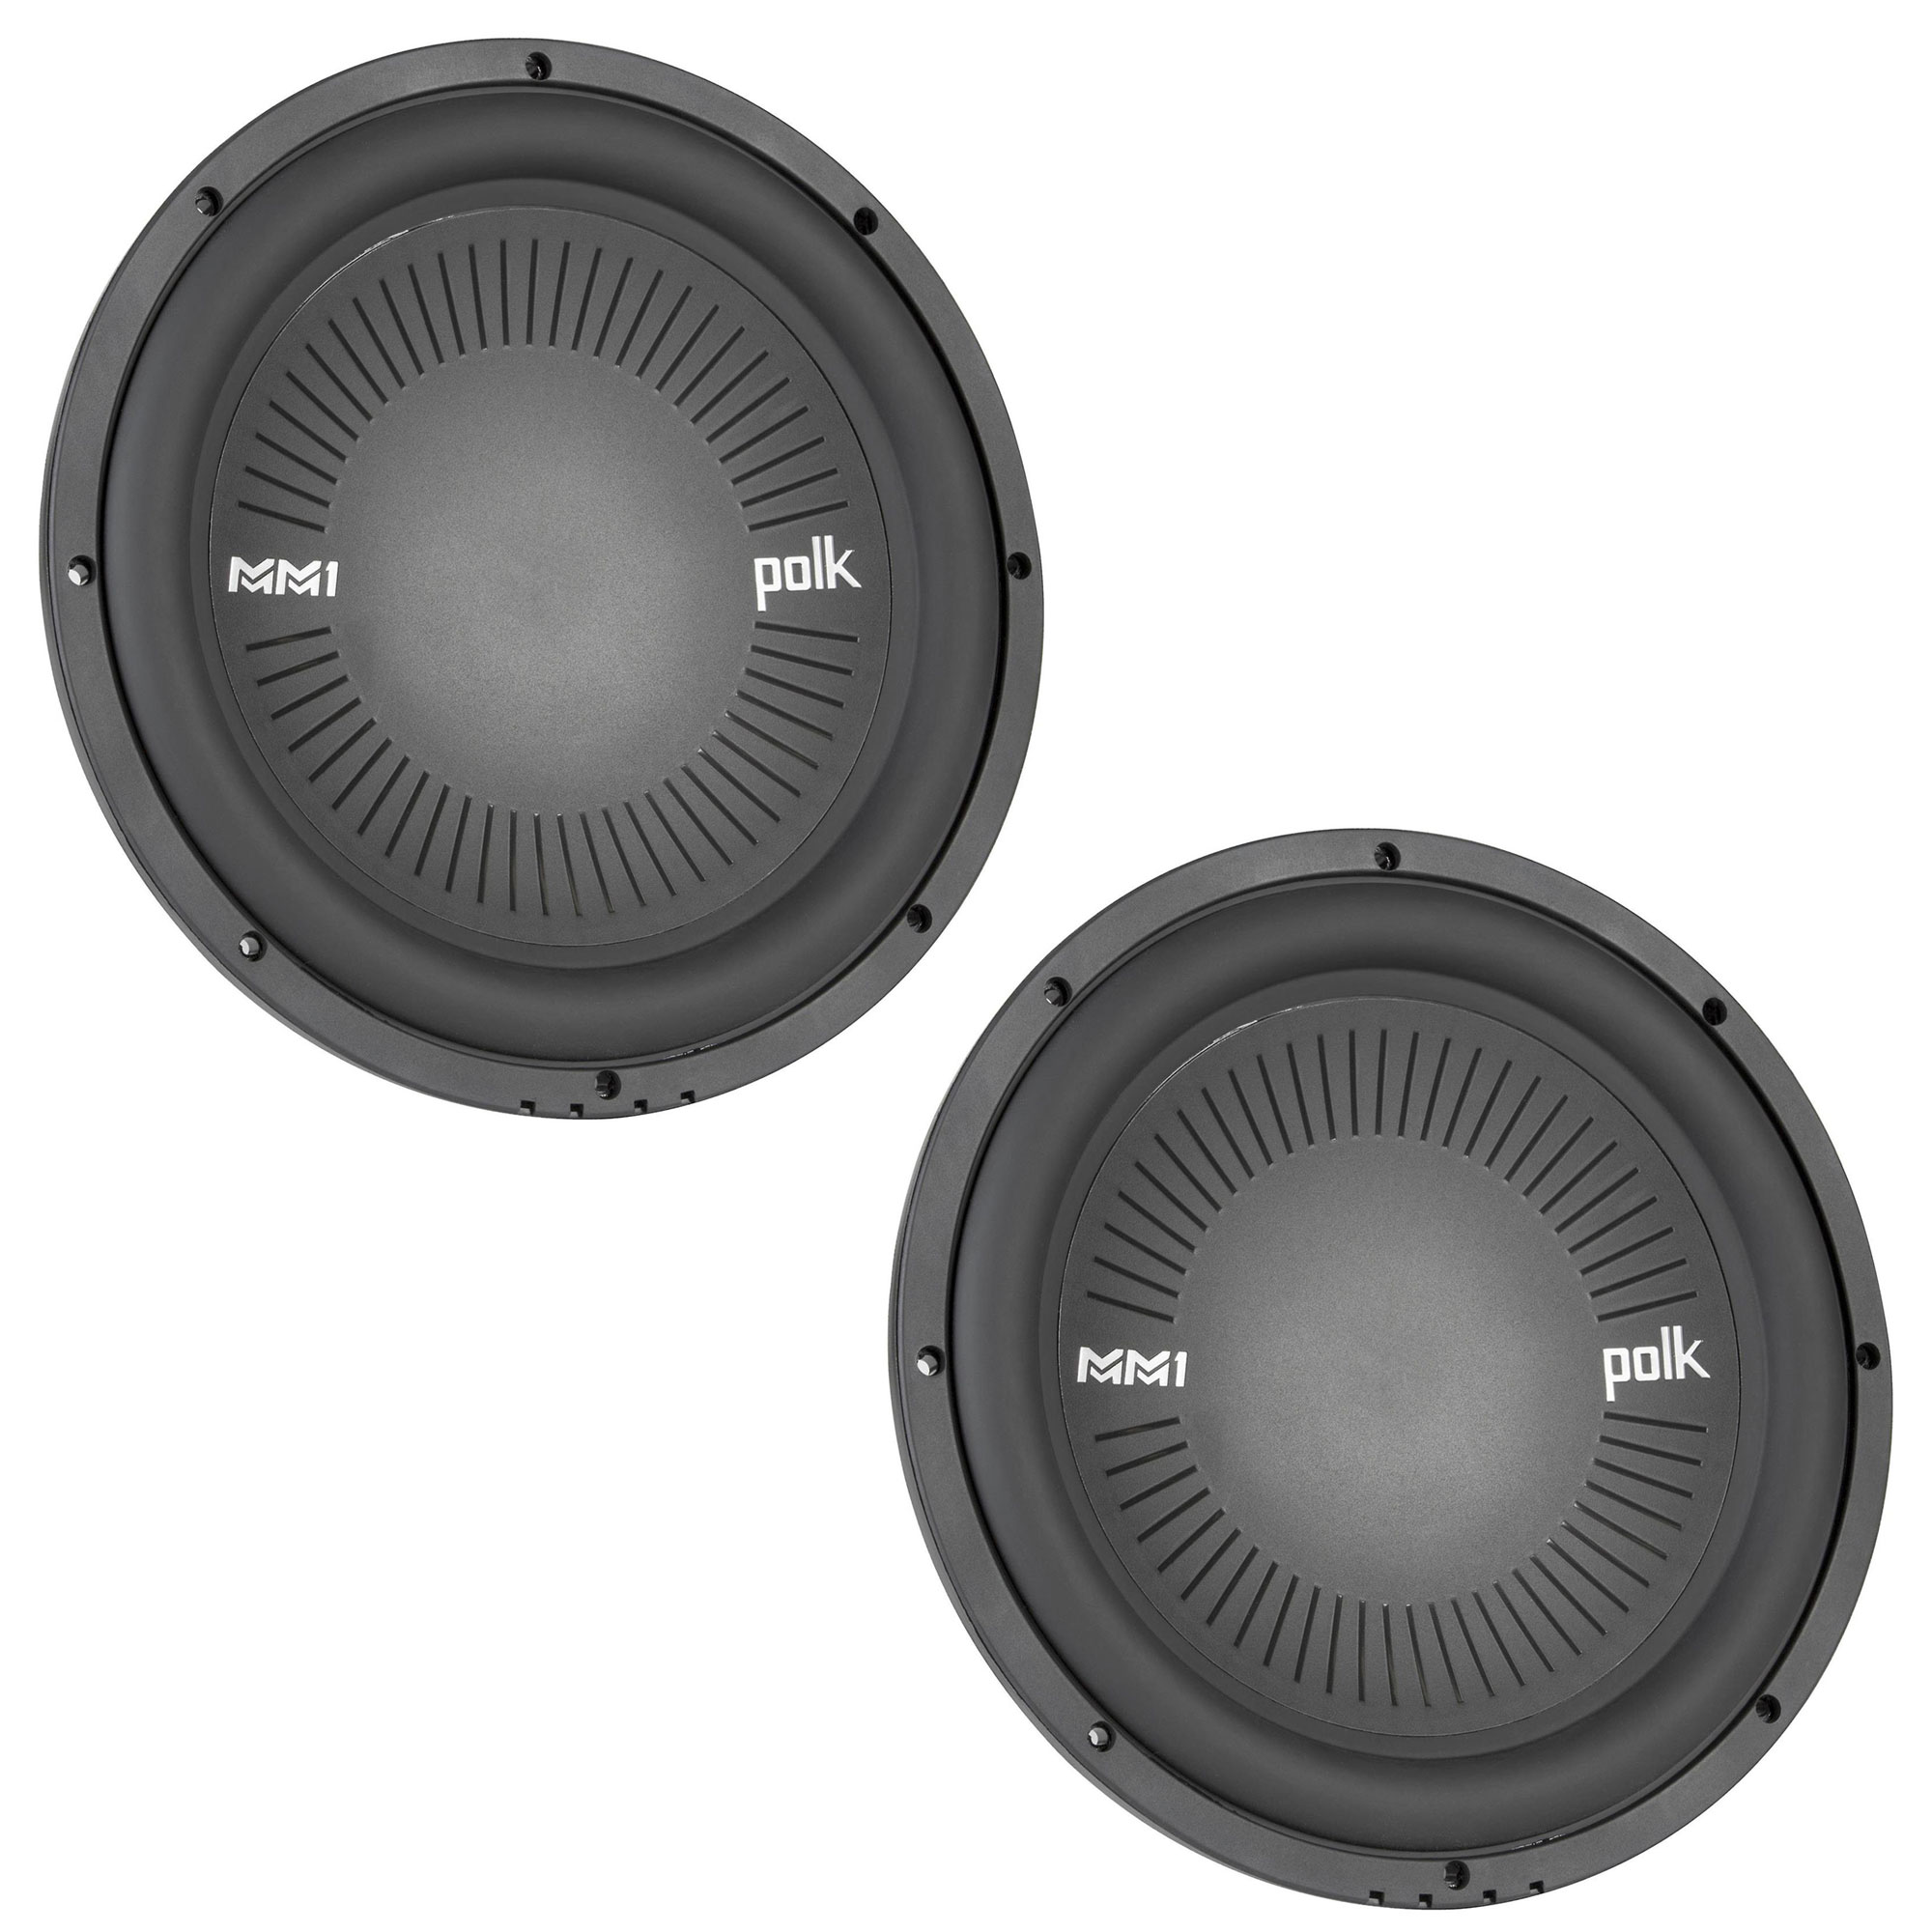 """Polk MM1 Series 10"""" 1200W 4 Ohm Single Voice Coil Marine Subwoofer (2 Pack)"""